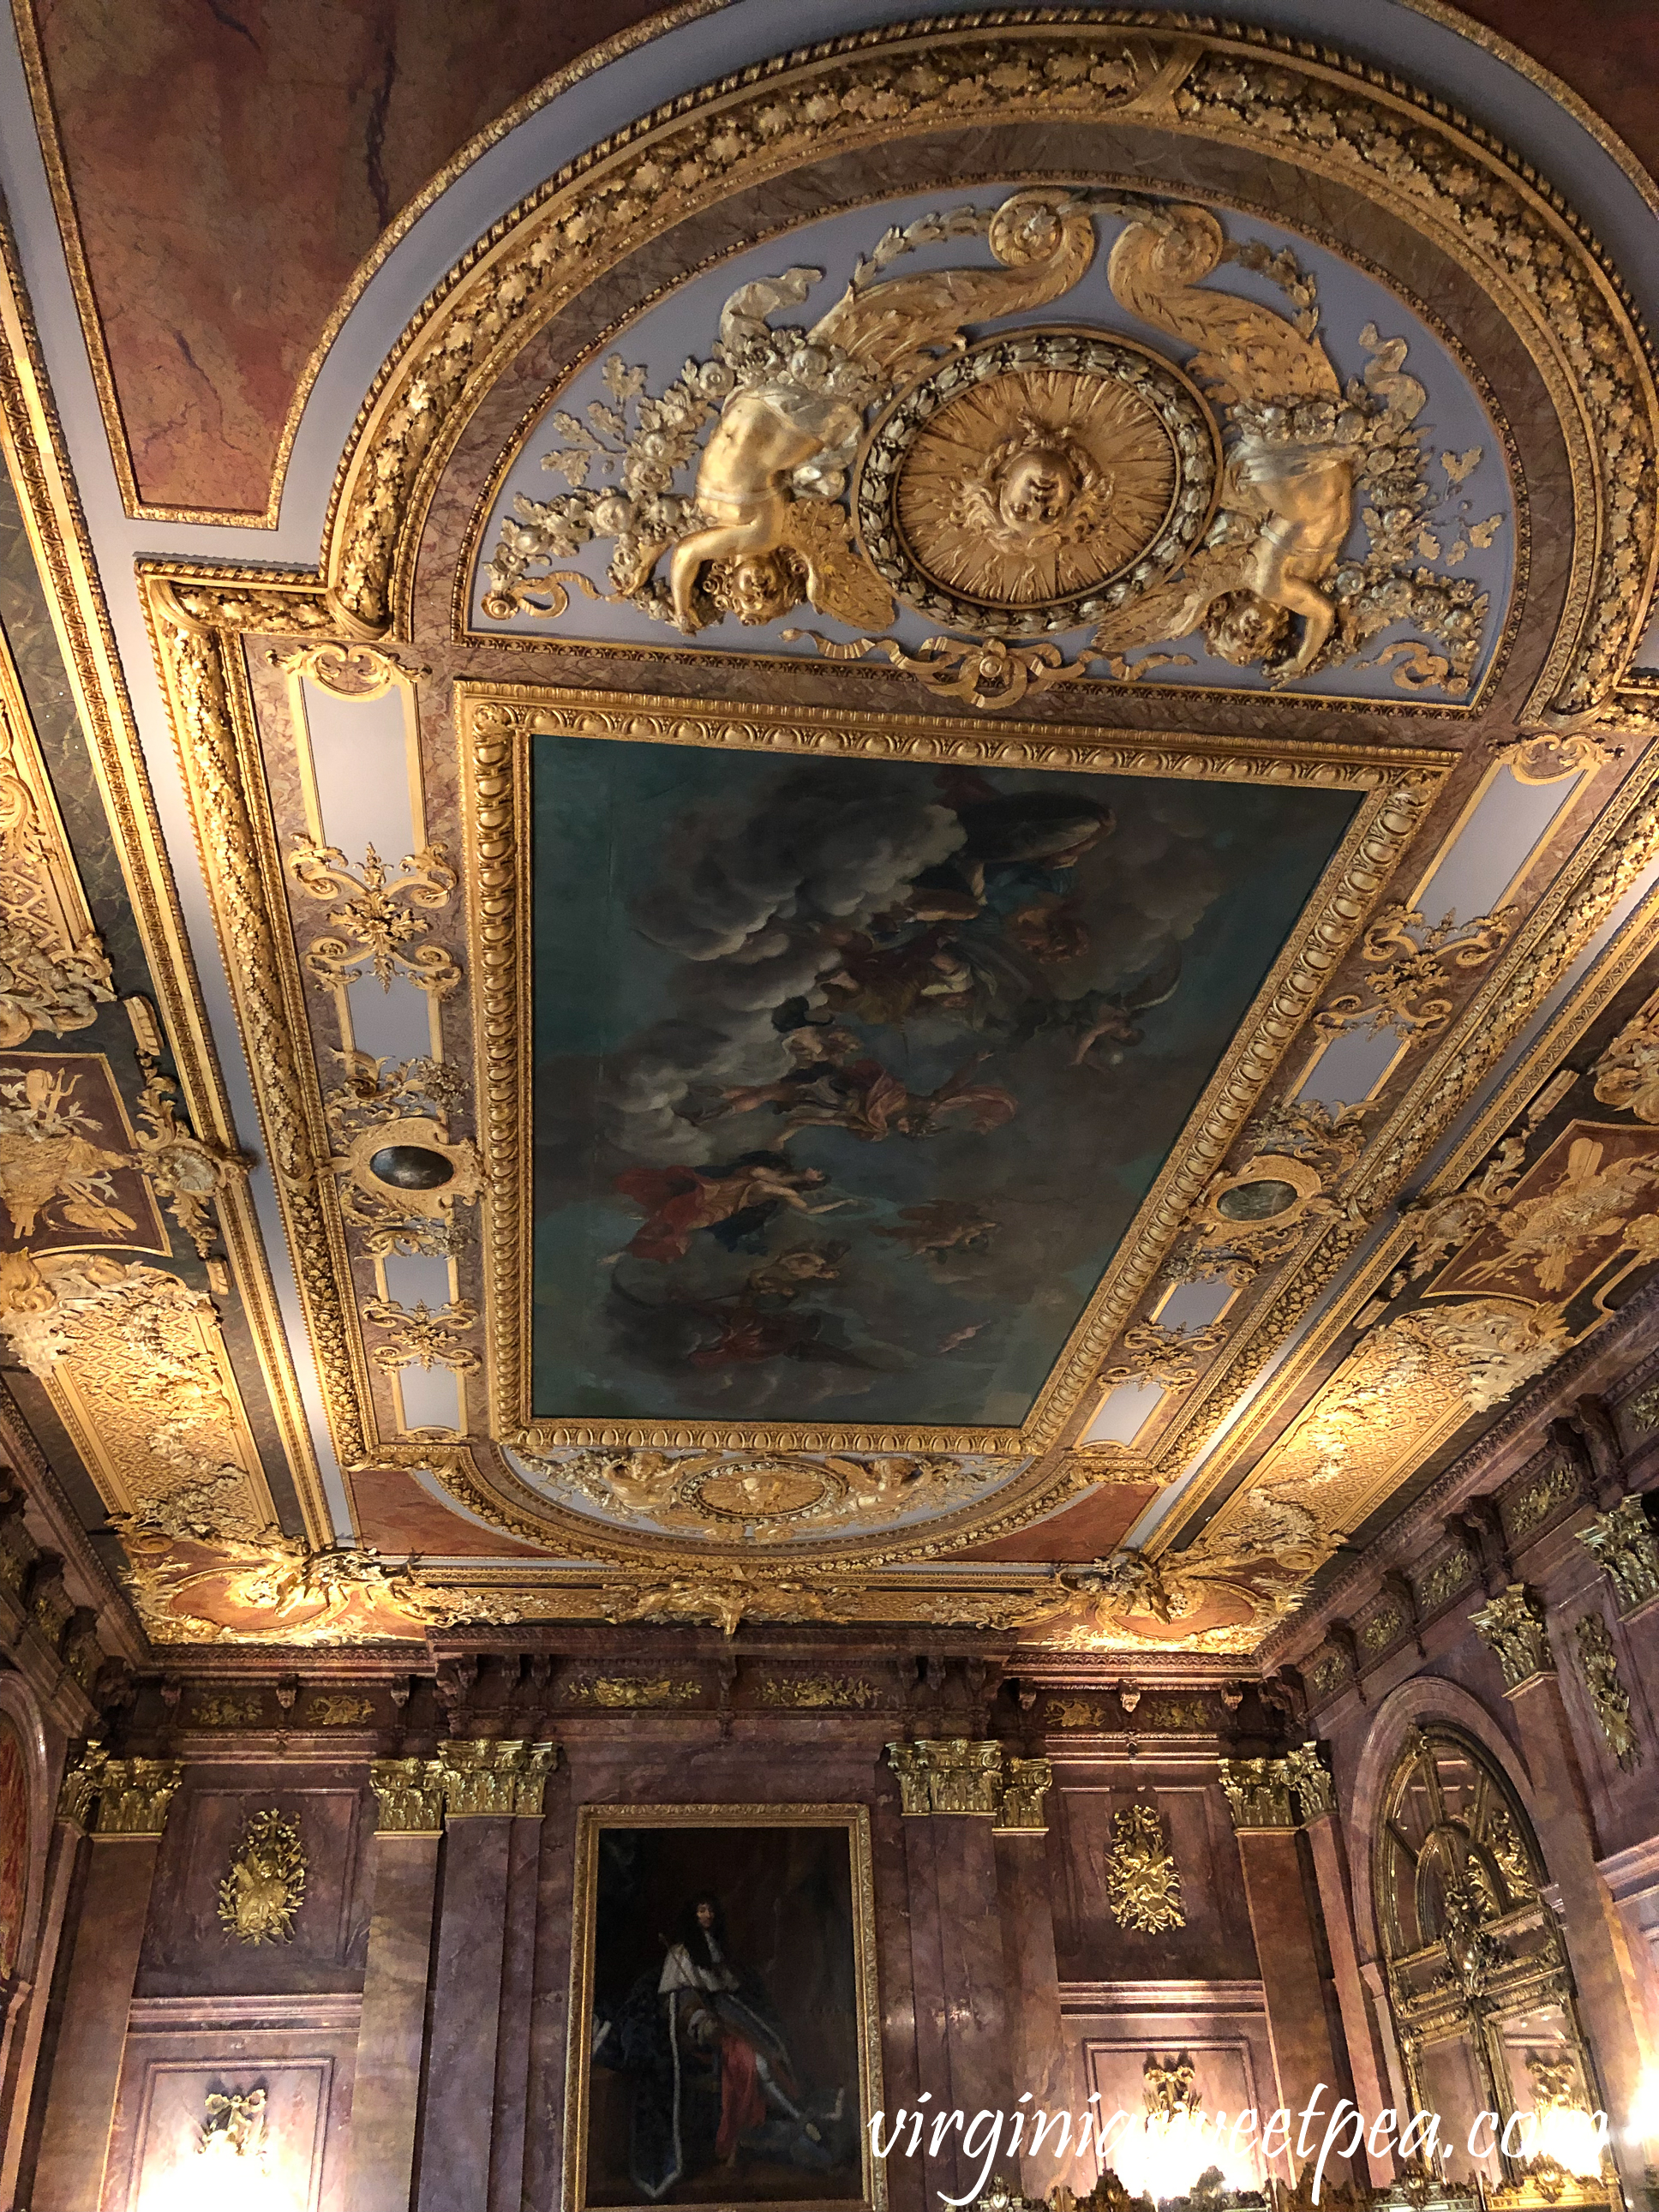 Dining room ceiling in Marble House